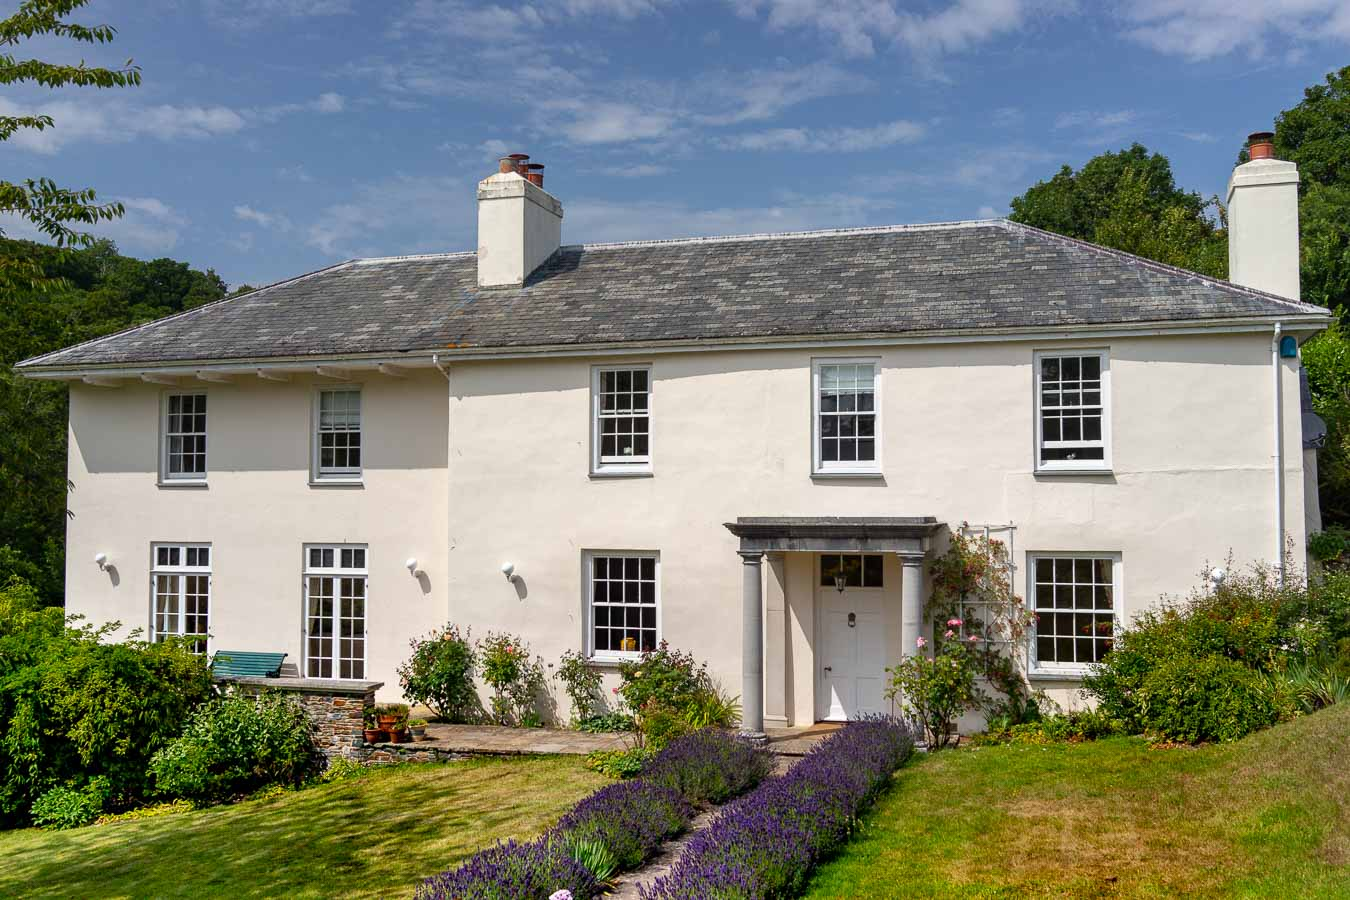 Flear House is a Devon holiday home with private pool that sleeps 10 people.